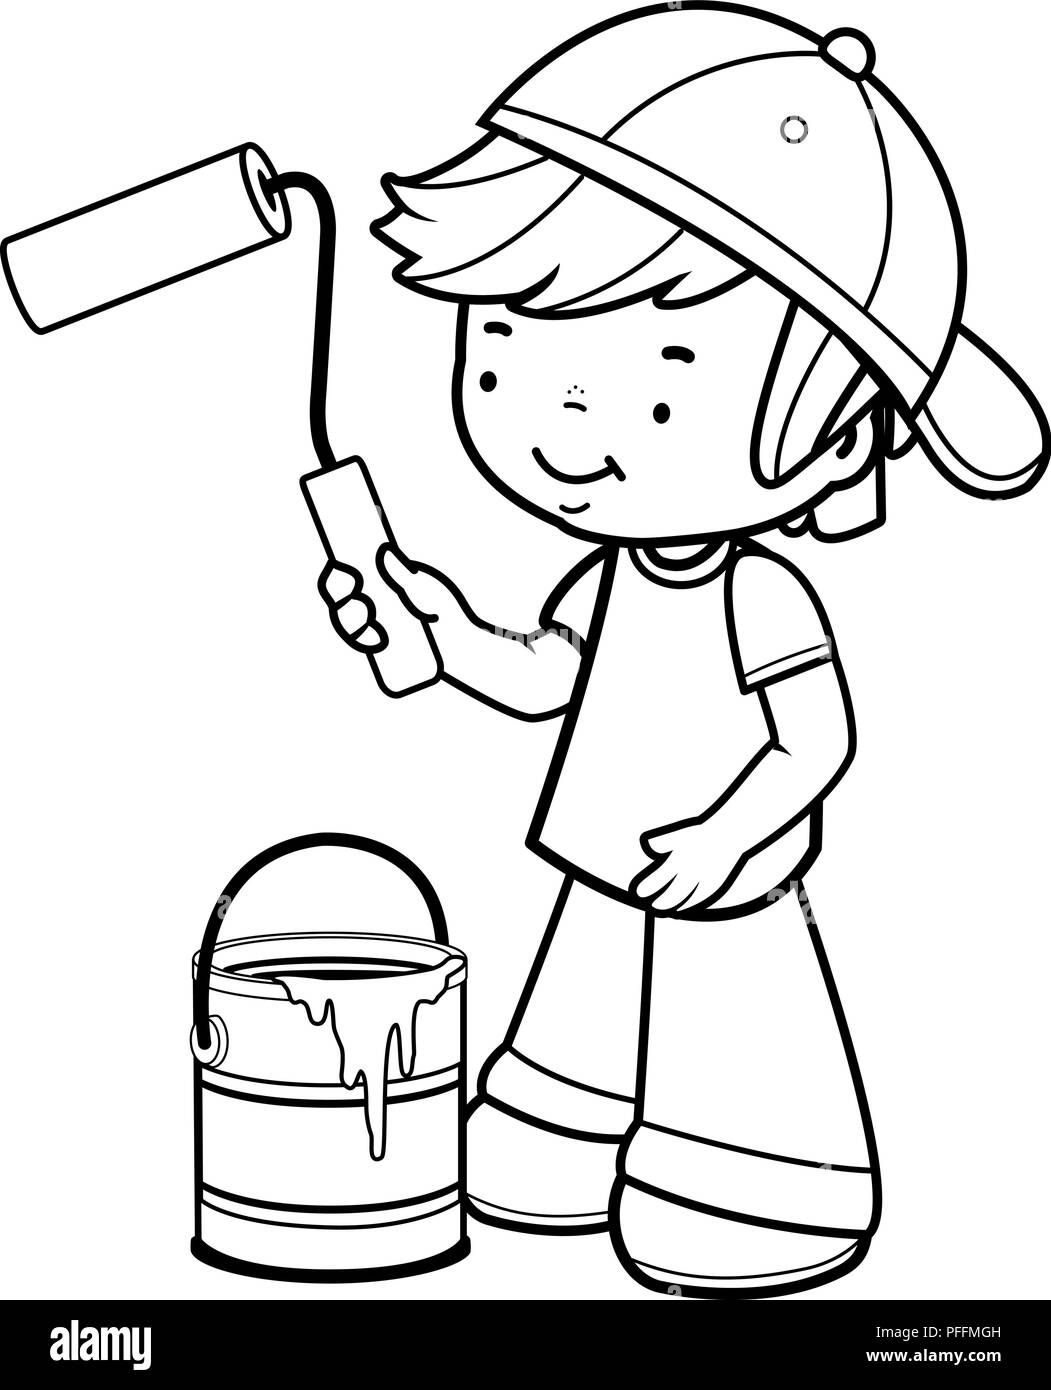 Boy Painting With A Paint Roller And A Paint Bucket Vector Black And White Illustration Stock Vector Image Art Alamy